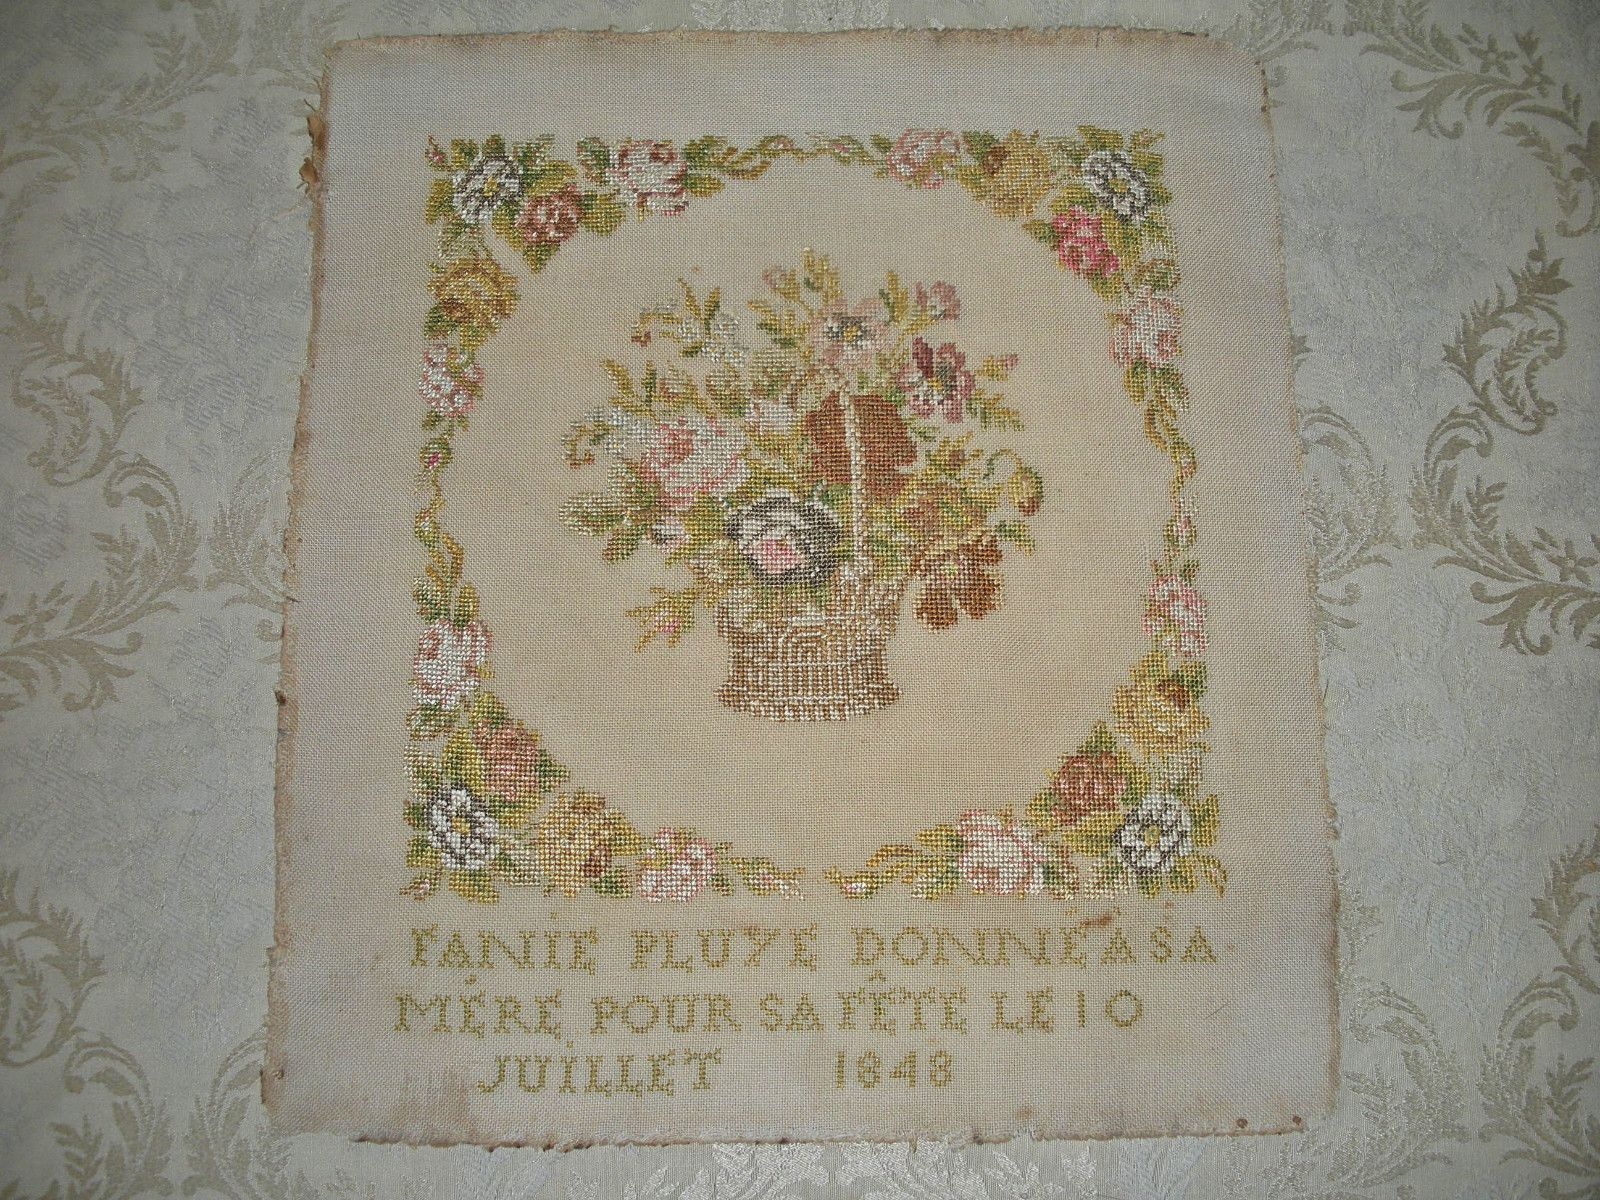 A Beautiful Mid 19th Century FRENCH Sampler Dated 1848